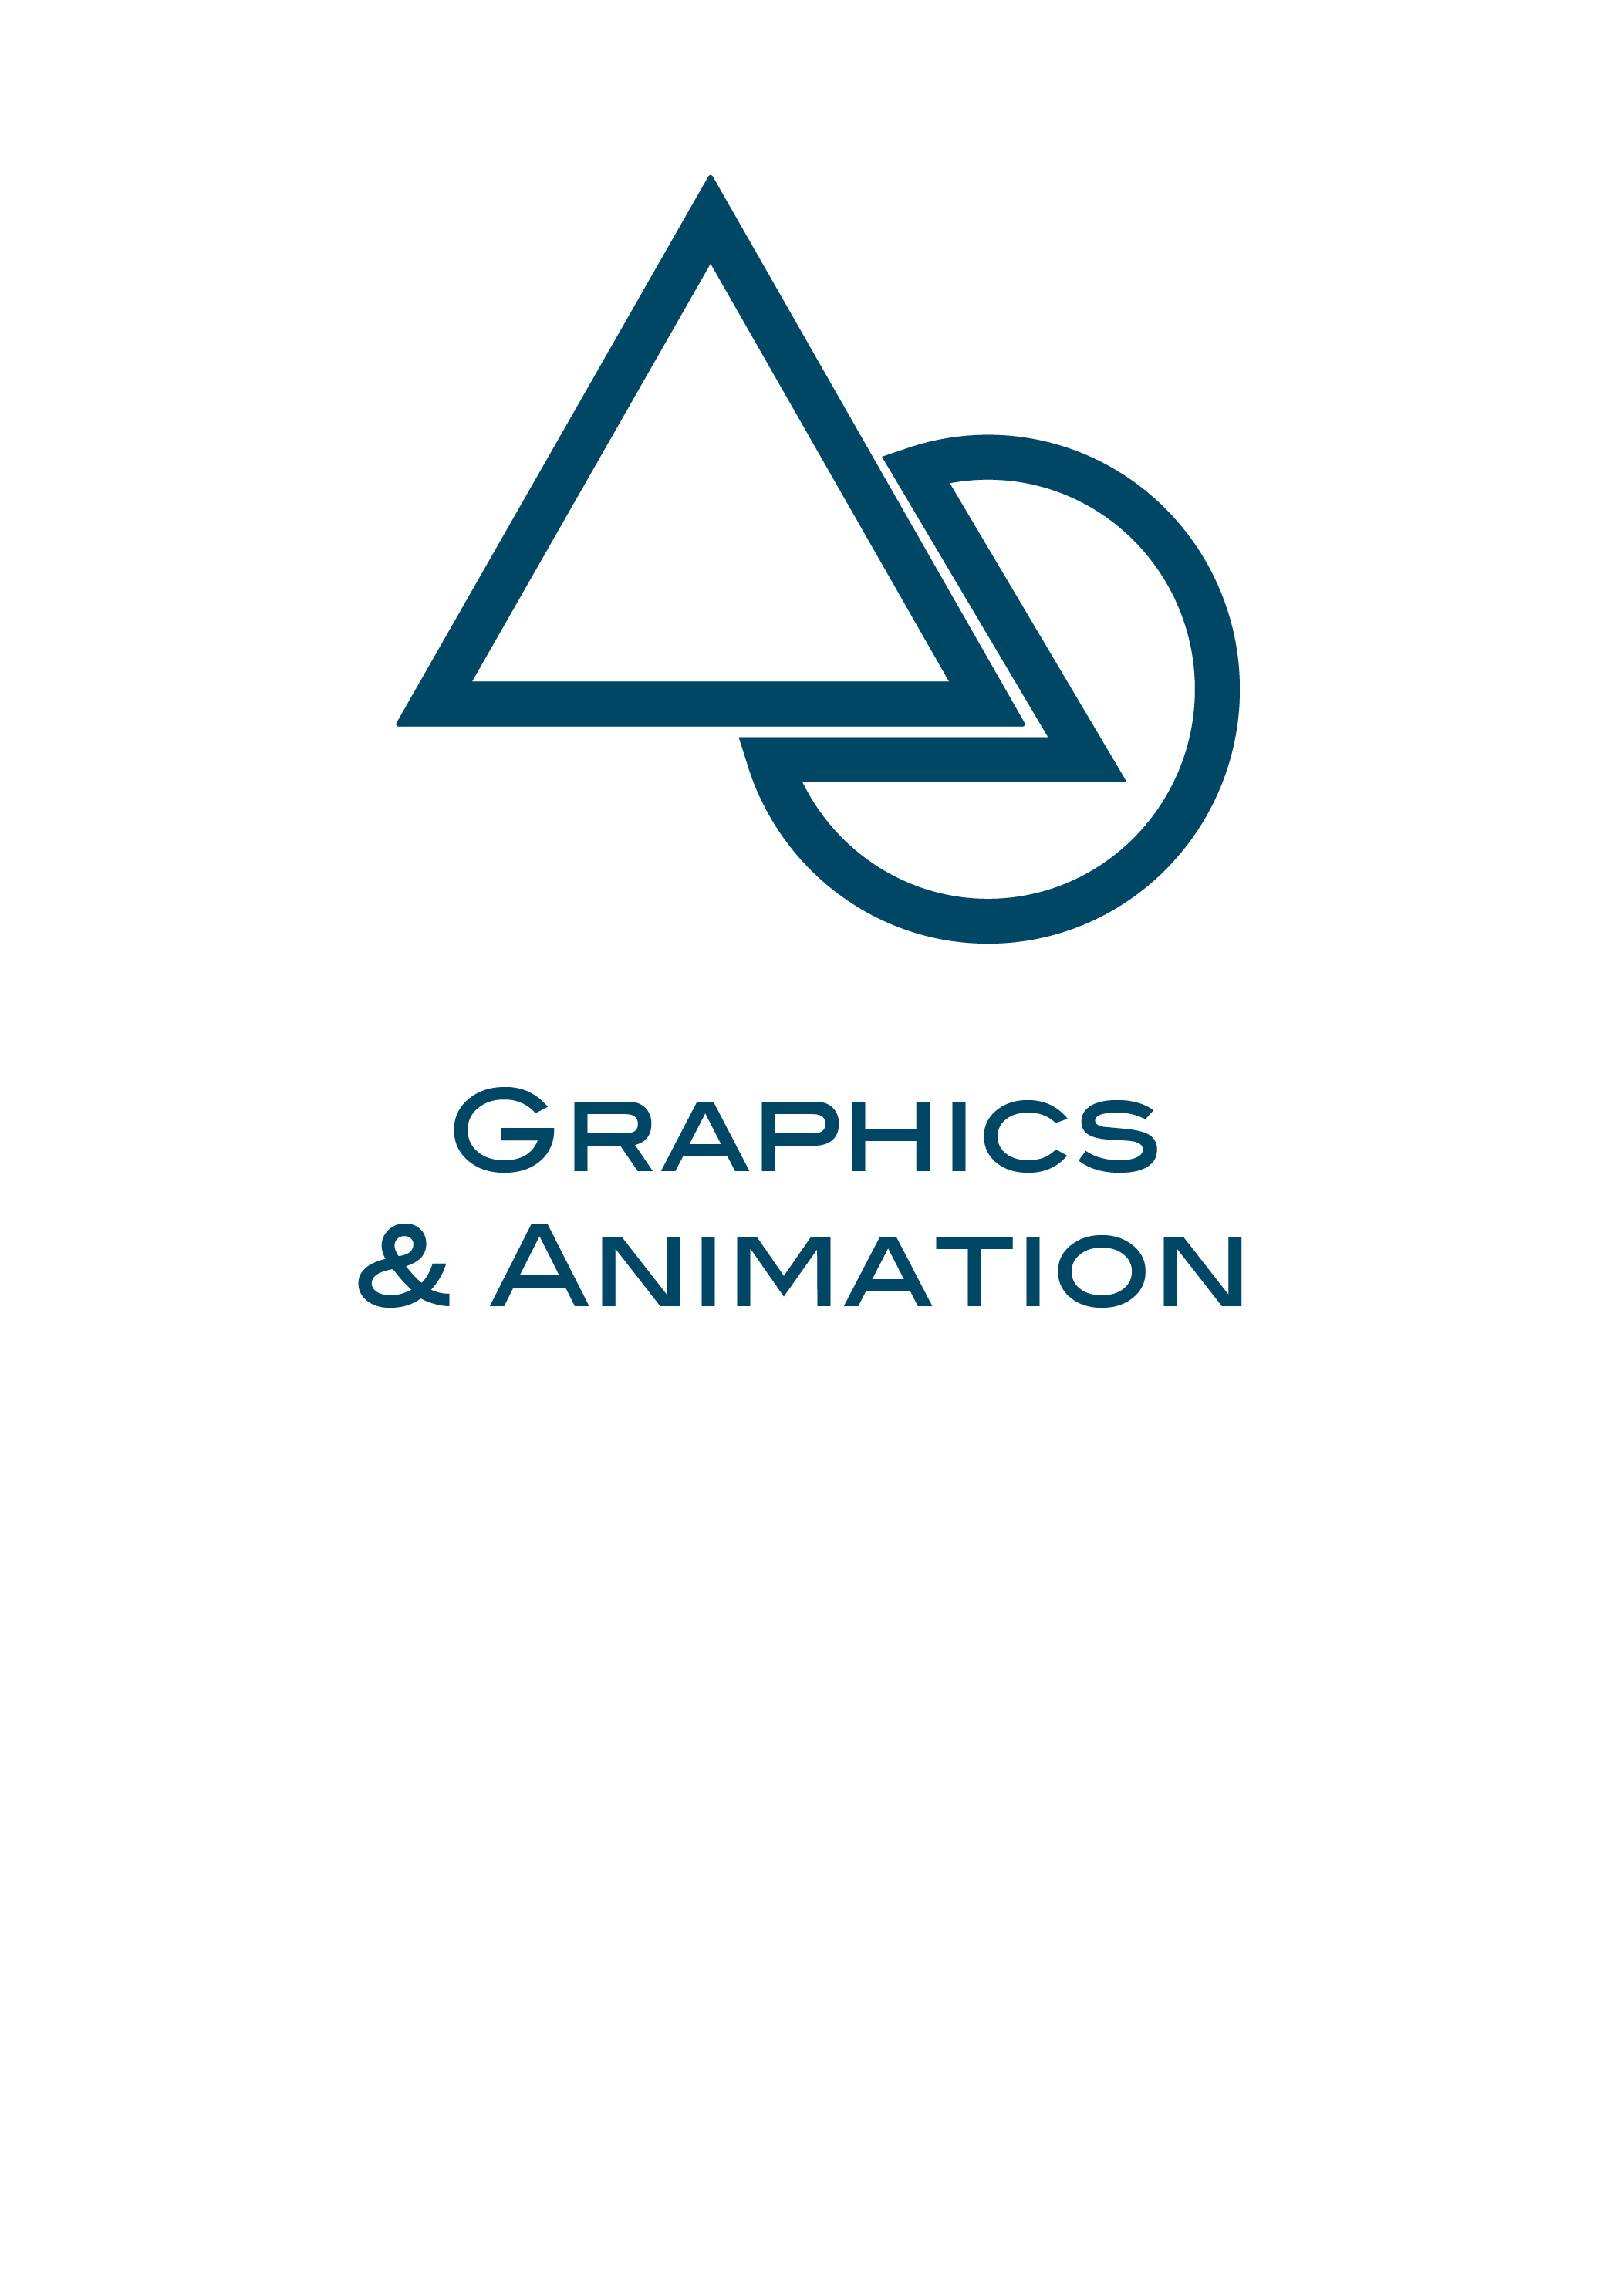 We offer a full range of motion graphics, animation and visual effects services. We produce 2D and 3D animation as well as stunning CGI effects for live action video.